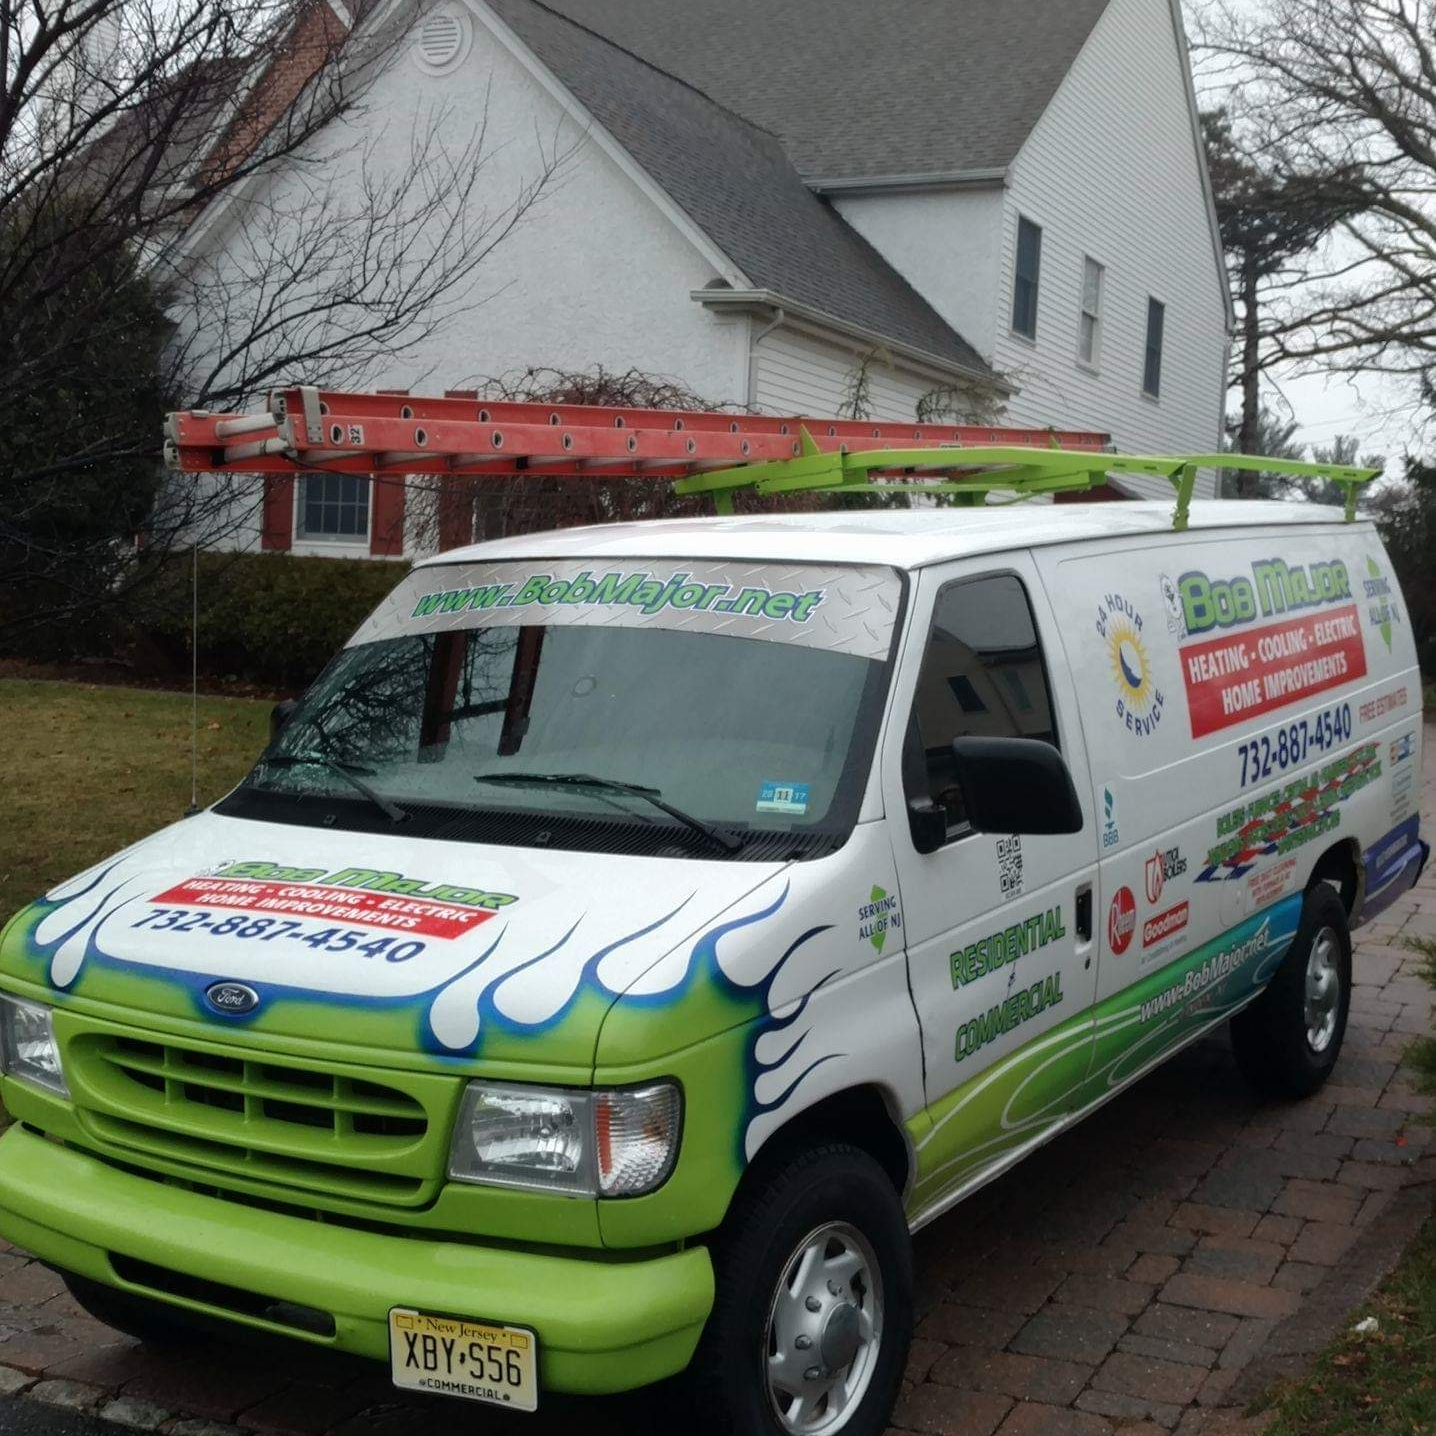 Bob Major Heating&Cooling